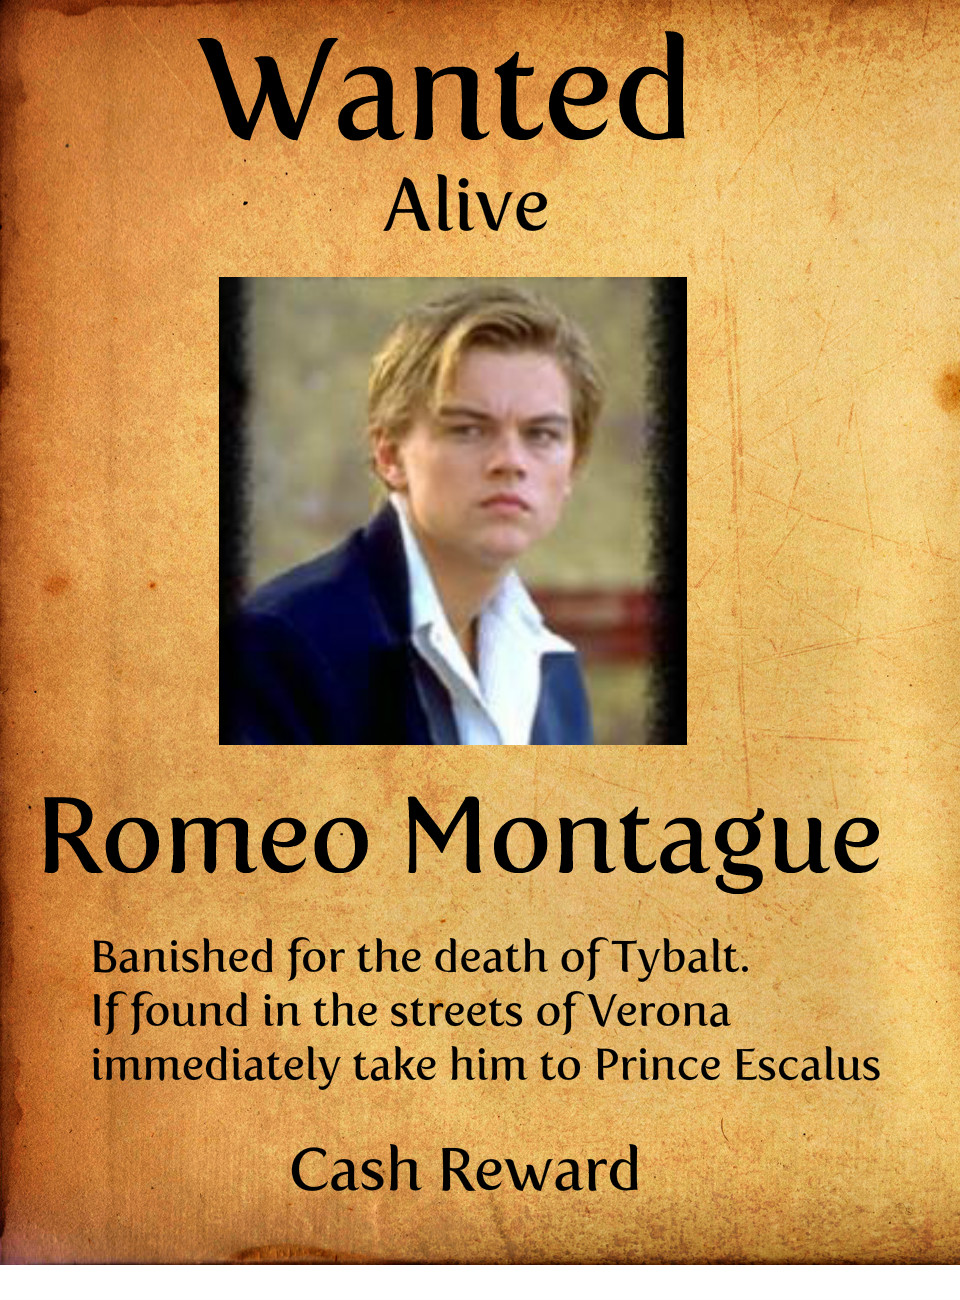 Romeo montague quotes quotesgram for The montague